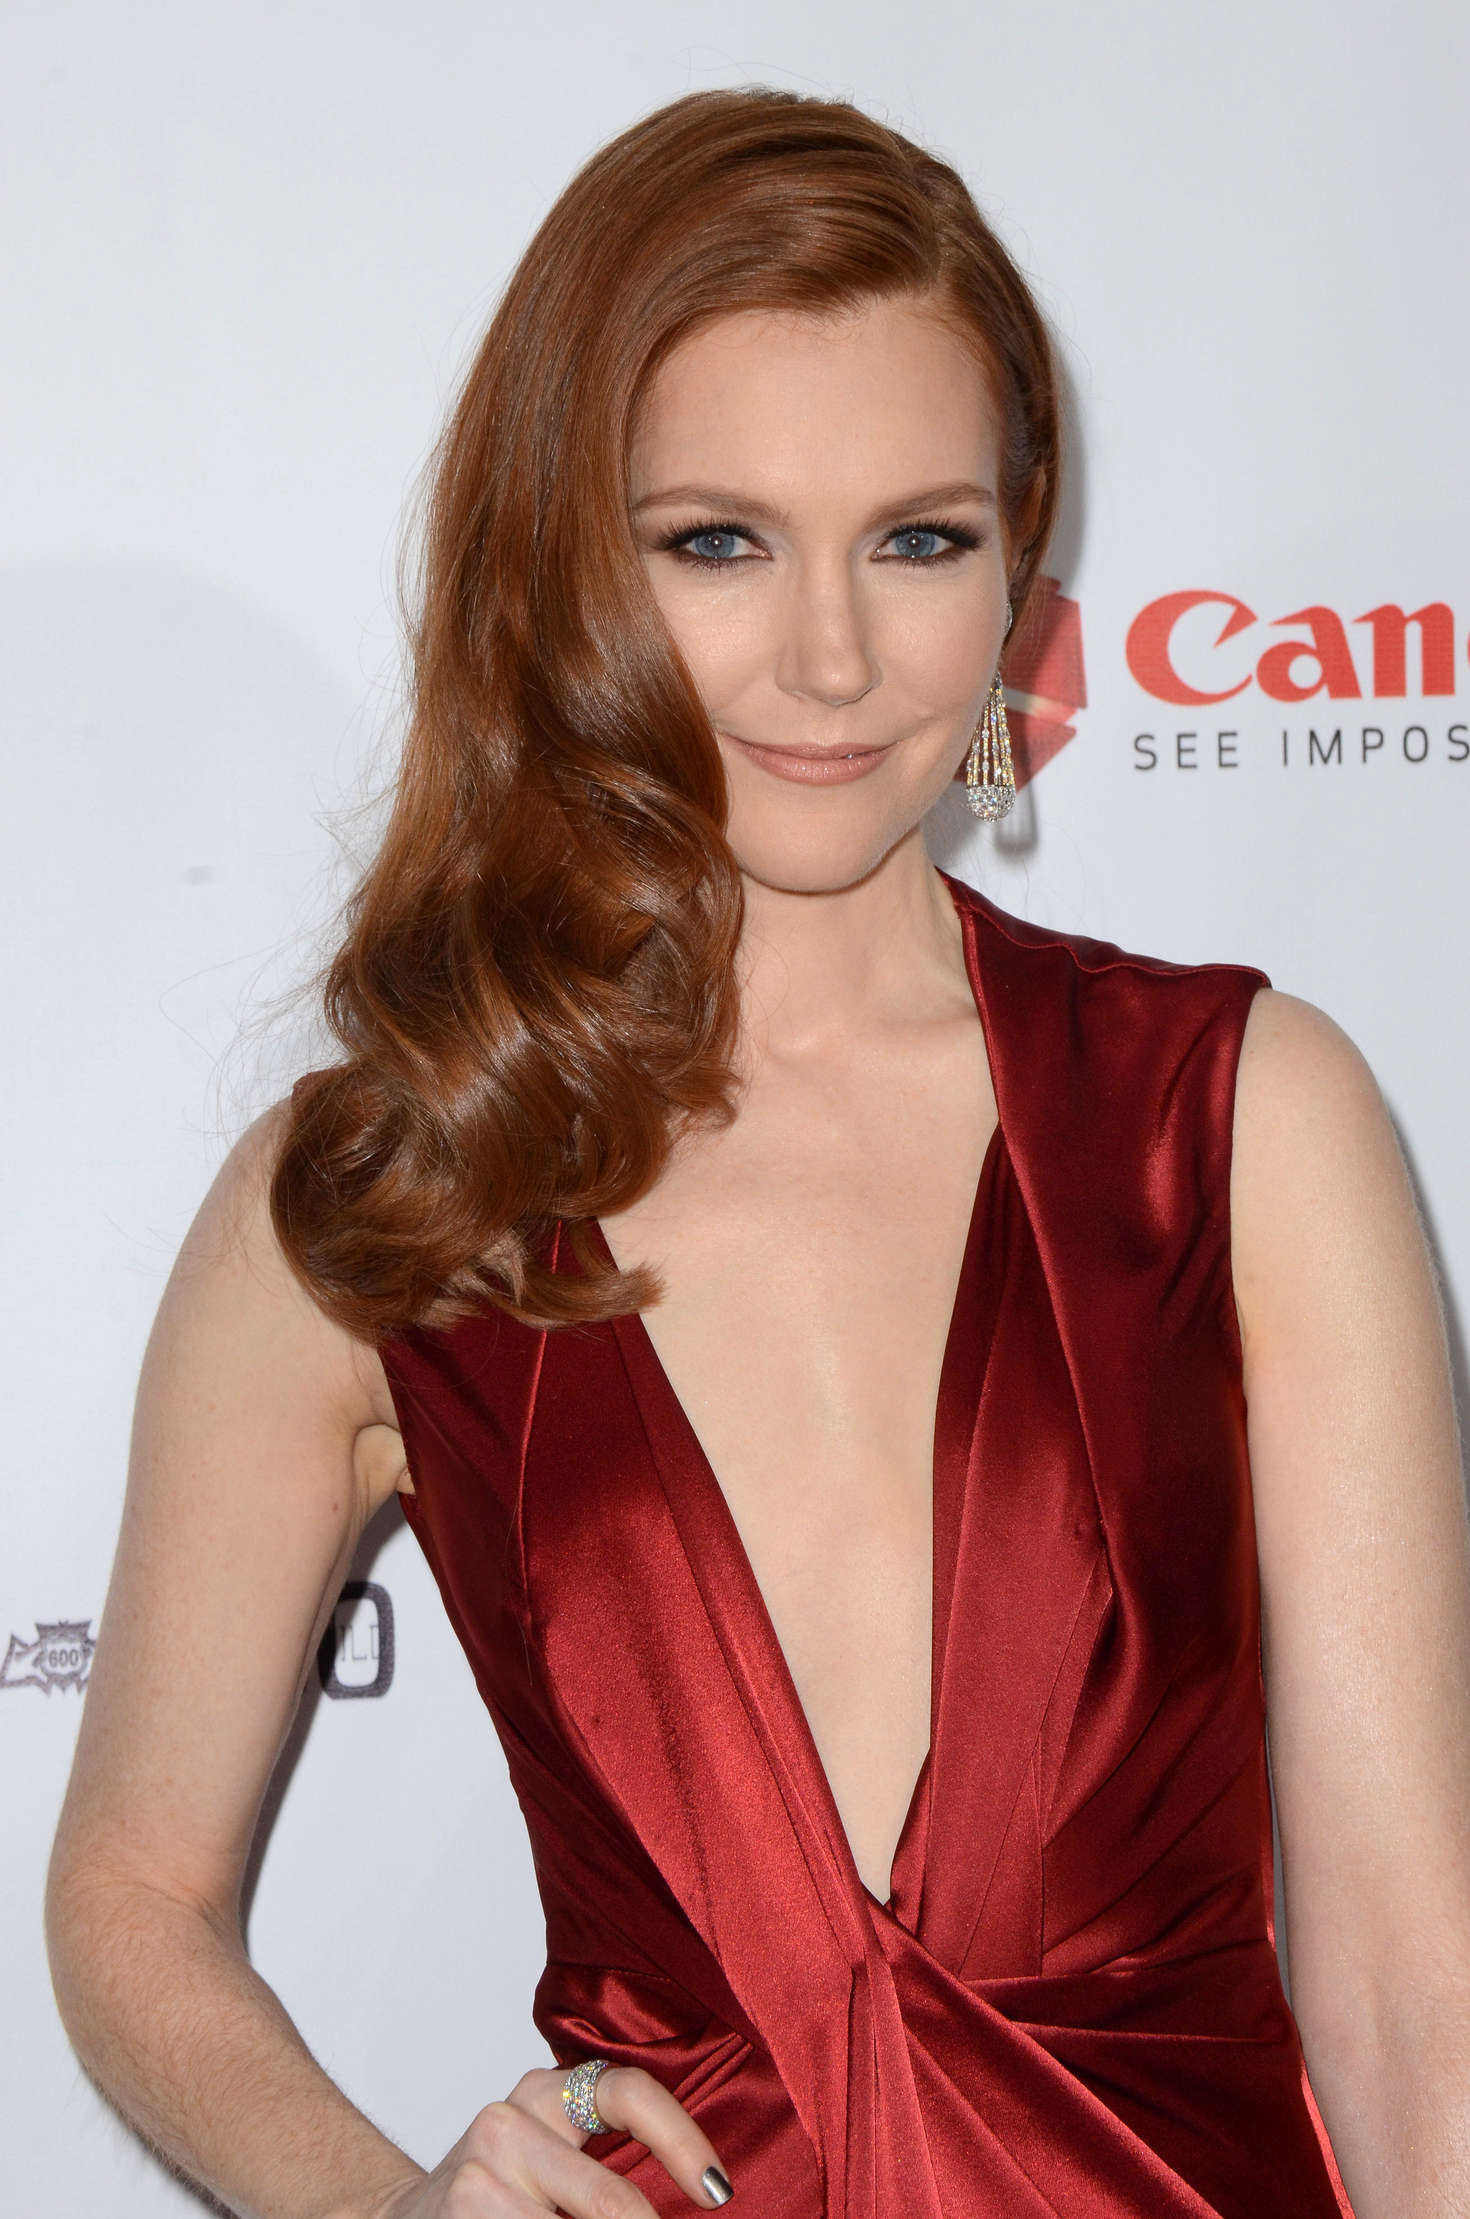 Darby Stanchfield naked (65 fotos), pics Selfie, YouTube, swimsuit 2020